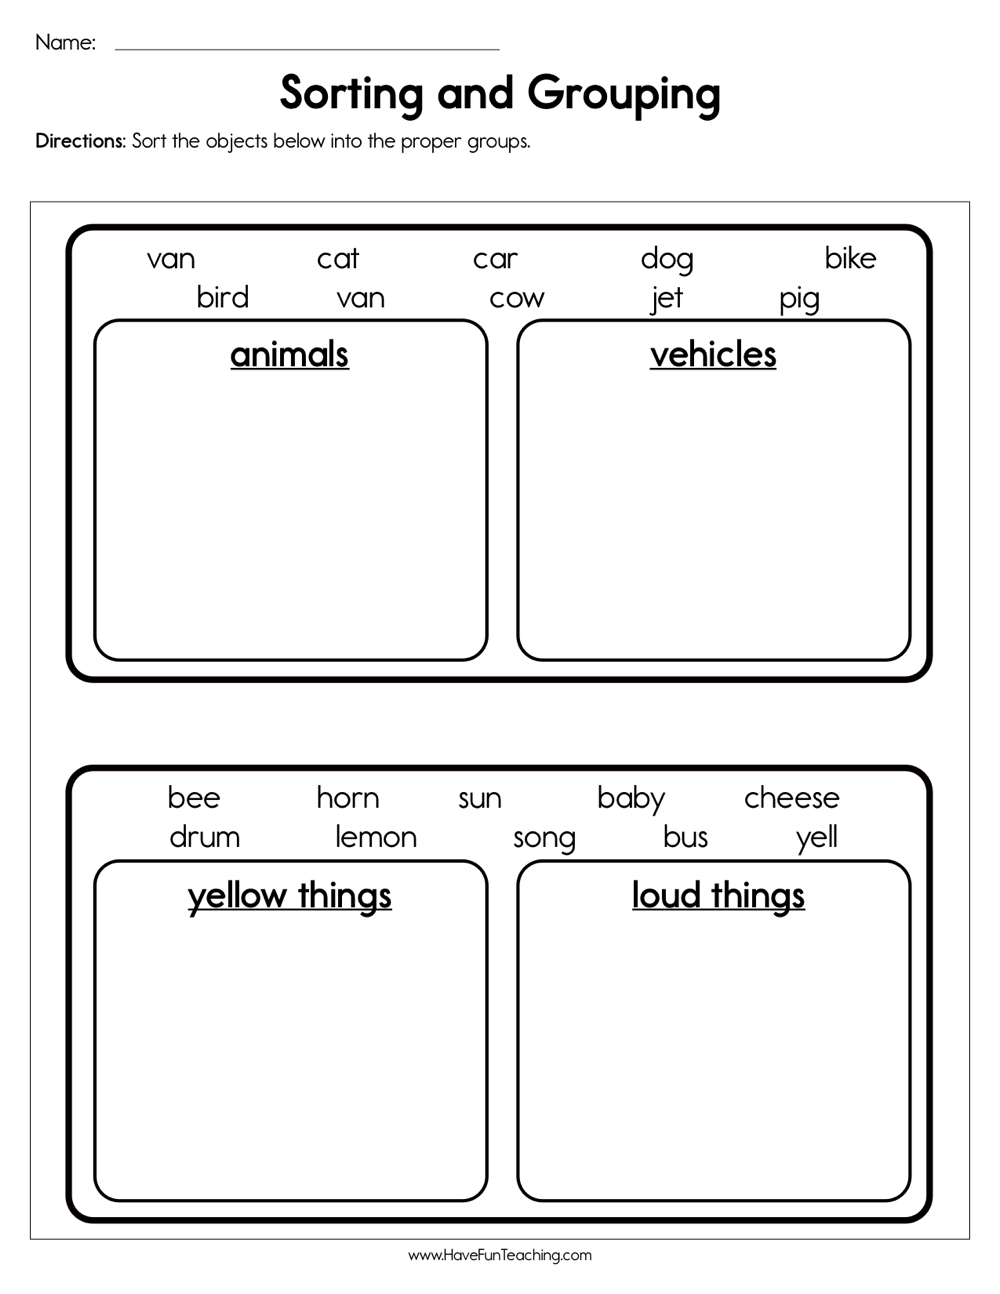 resources science classification worksheets. Black Bedroom Furniture Sets. Home Design Ideas